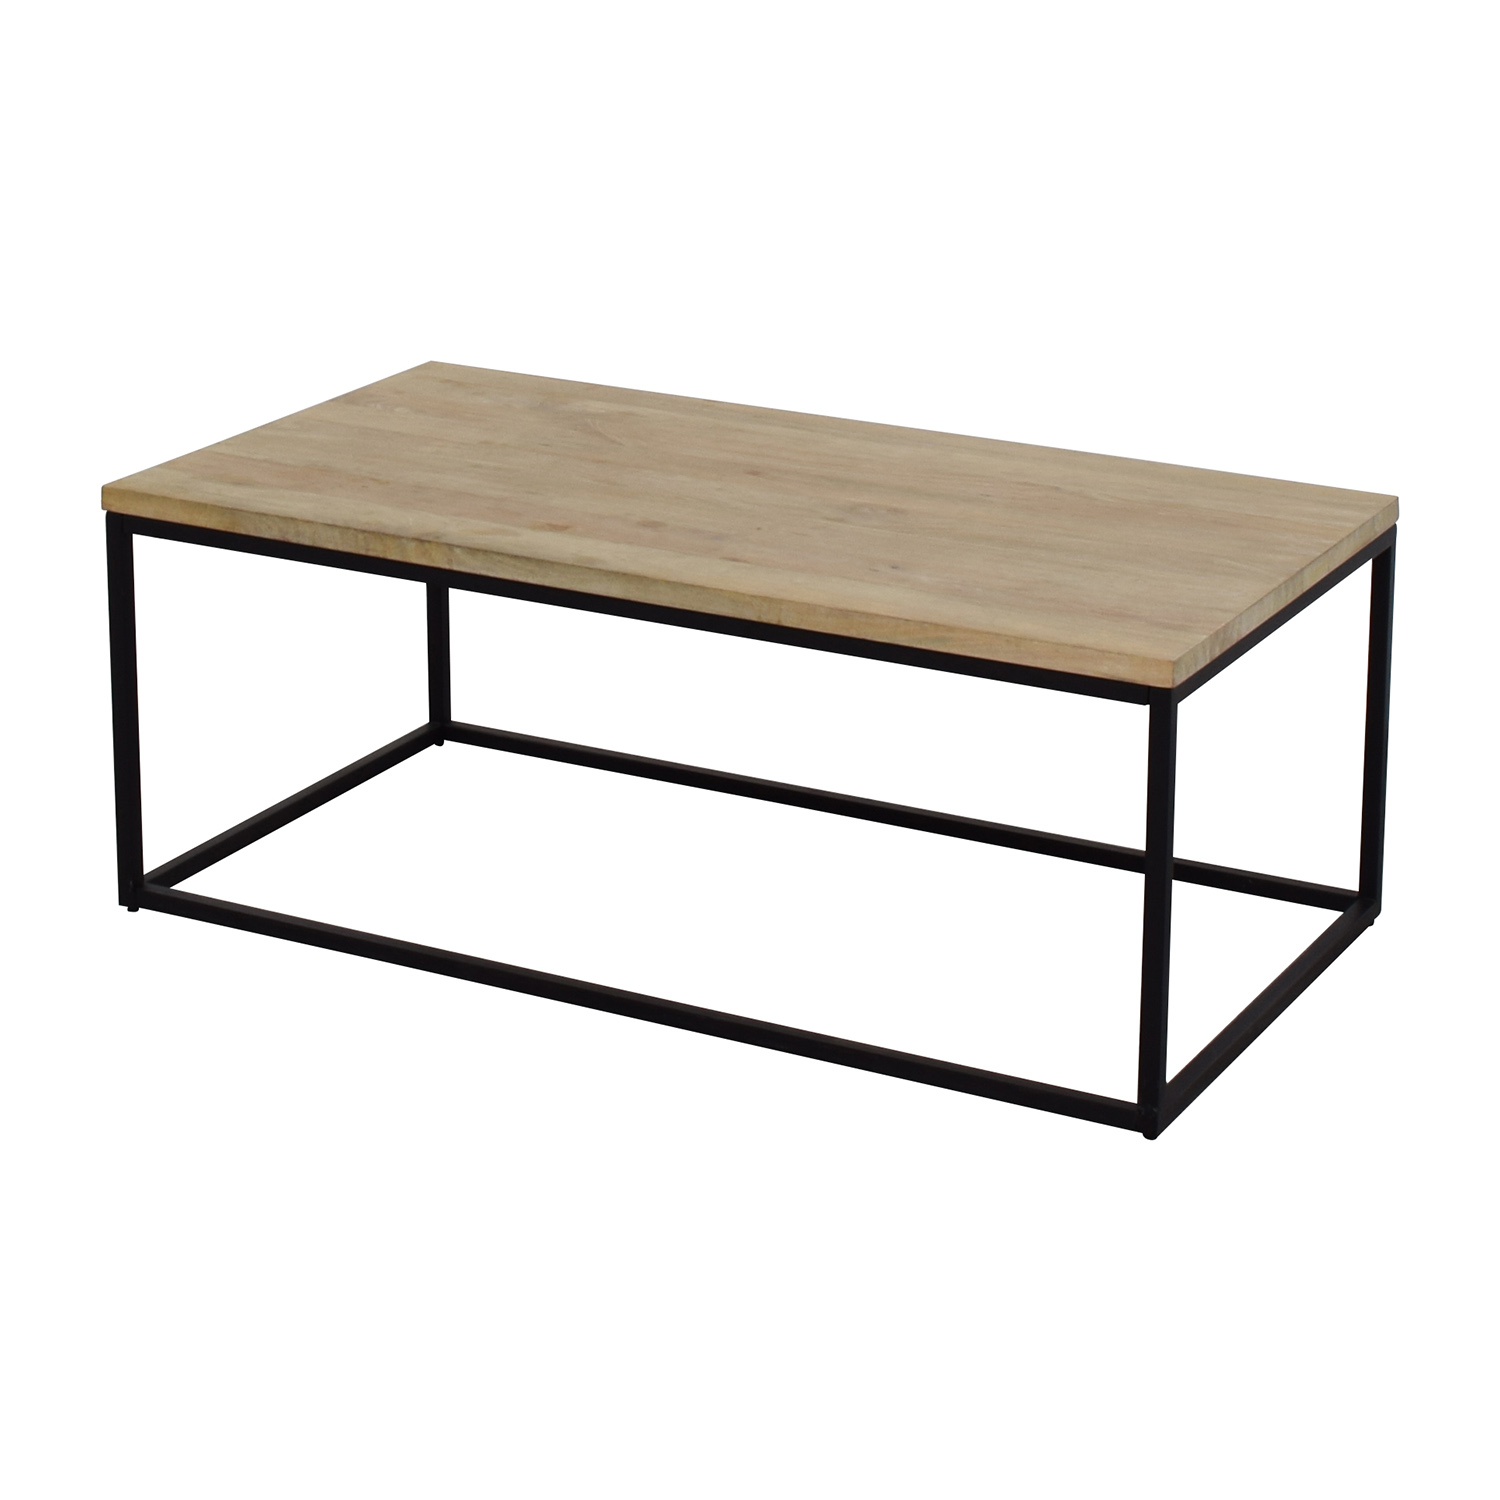 ... West Elm West Elm Box Frame Coffee Table Second Hand ...